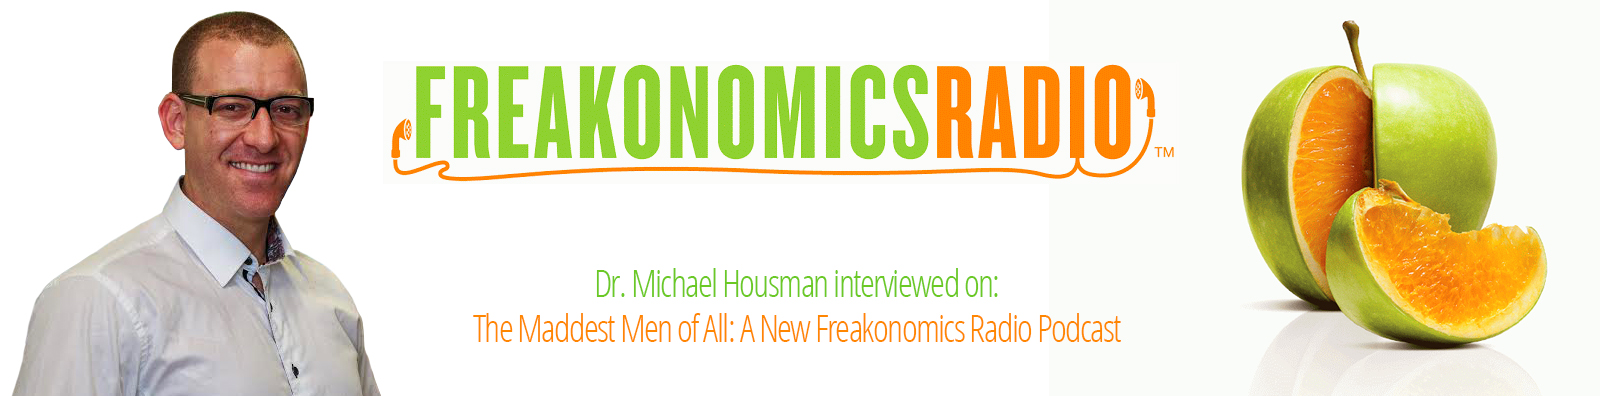 Dr. Michael Housman Interviewed on A New Freakonomics Radio Podcast